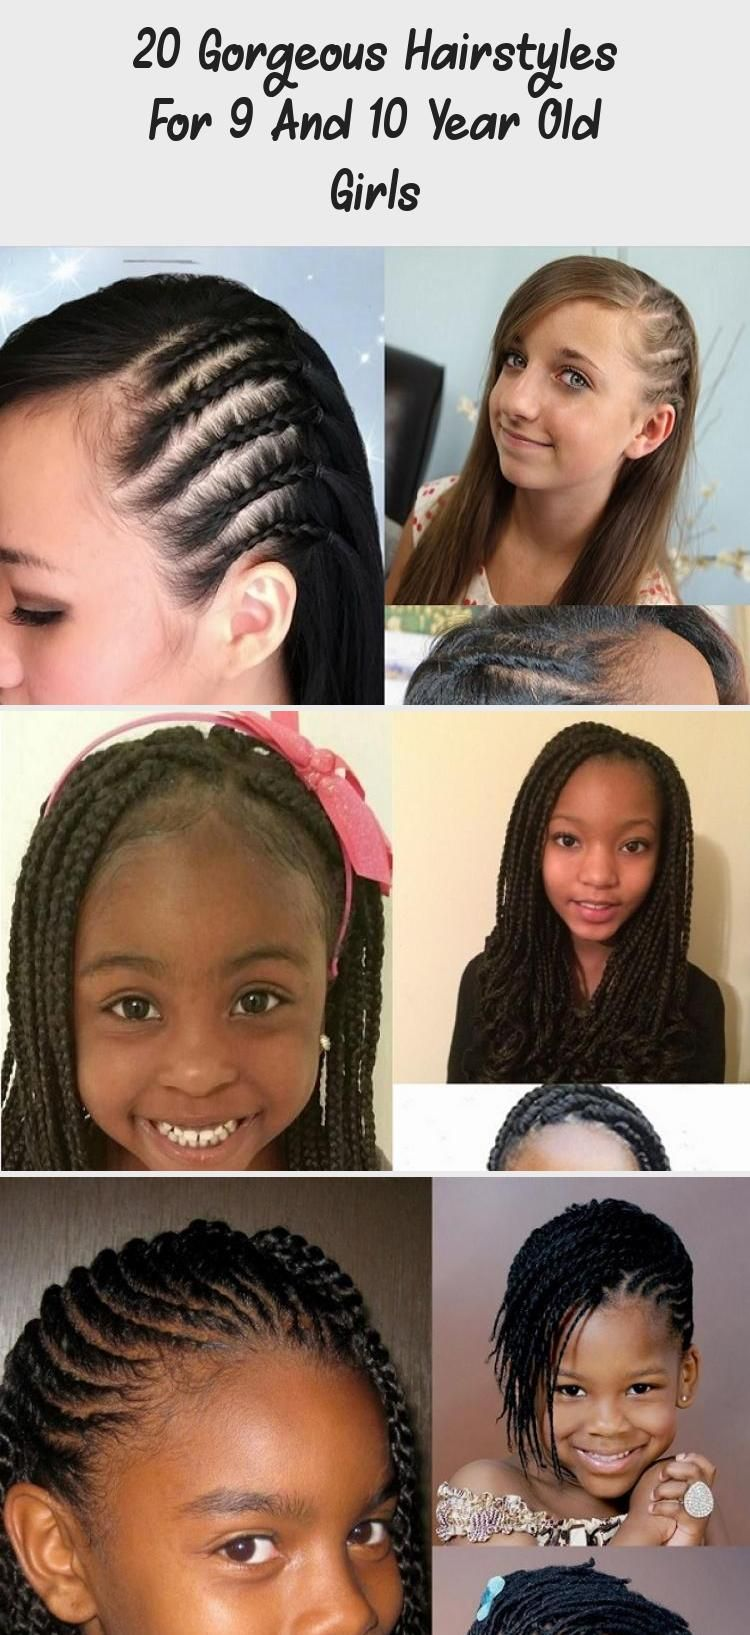 Cute Hairstyles For 9 Year Olds With Short Hair Bun Hair Styles Gymnastics Hair Competition Hair